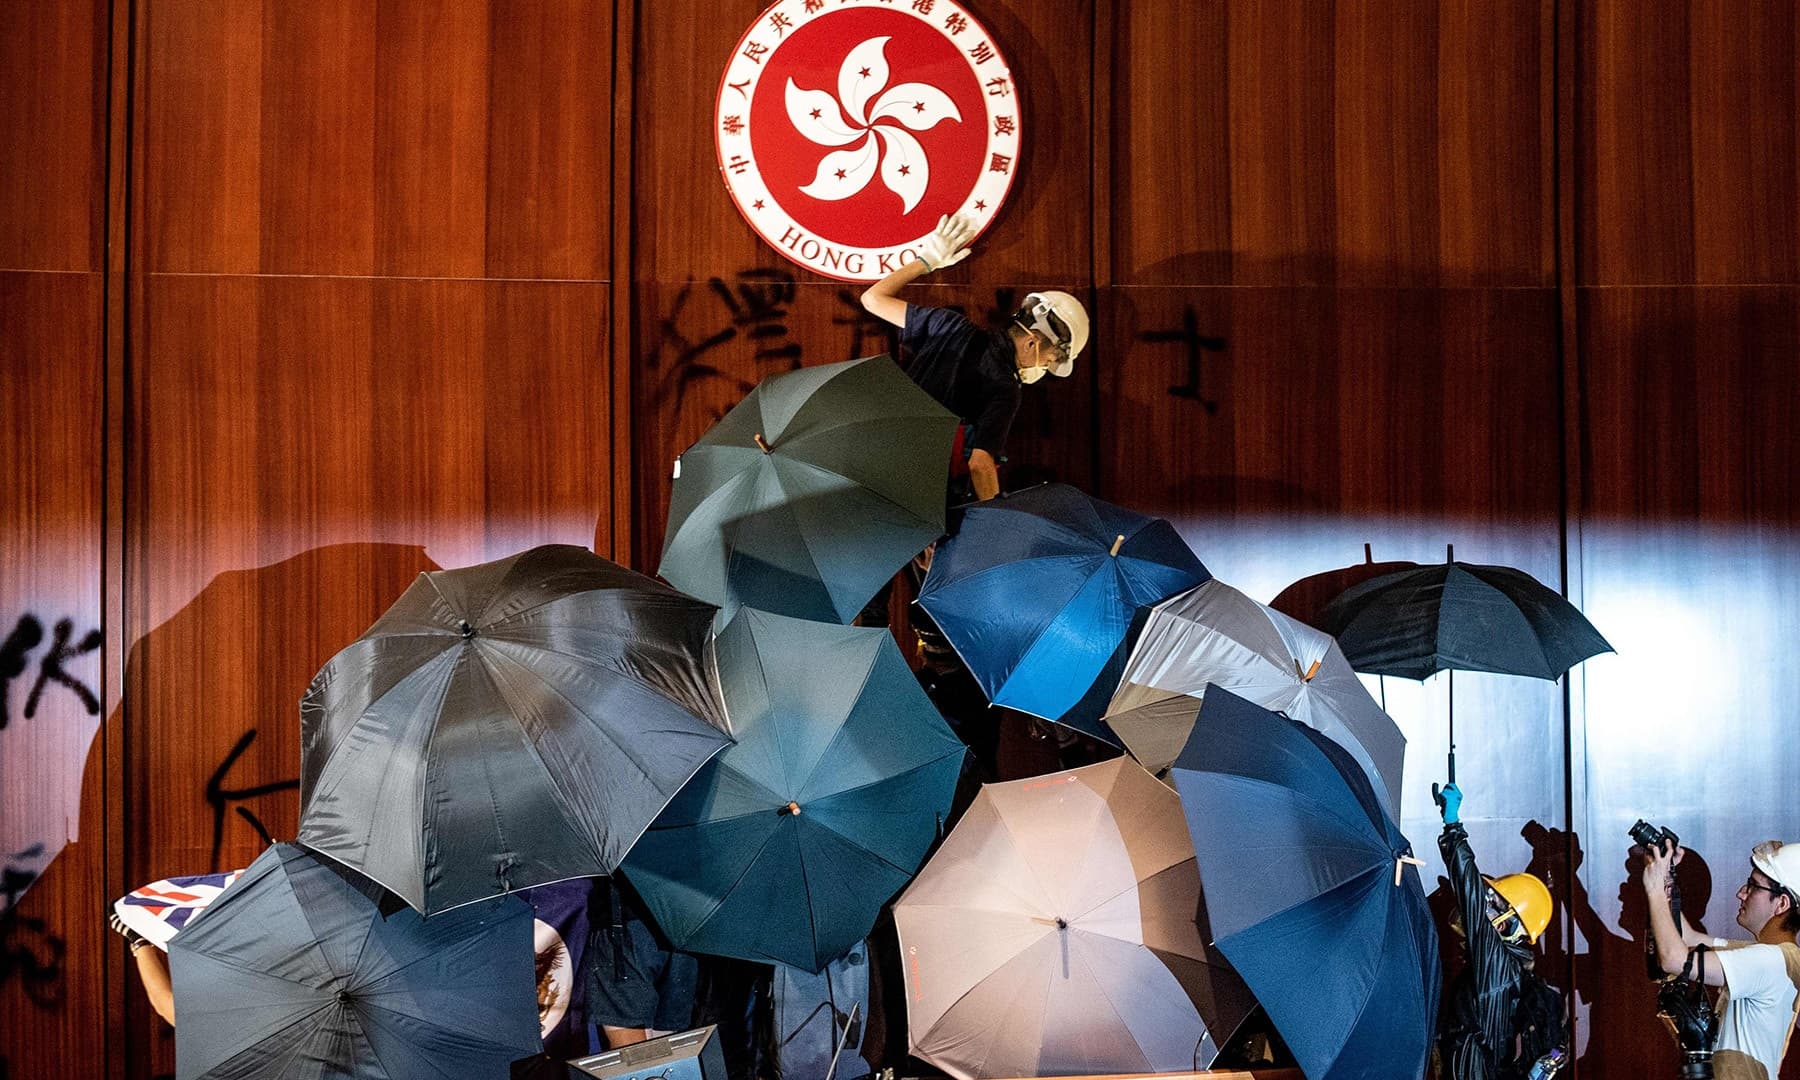 A protester defaces the Hong Kong emblem after protesters broke into the government headquarters in Hong Kong on July 1. — AFP